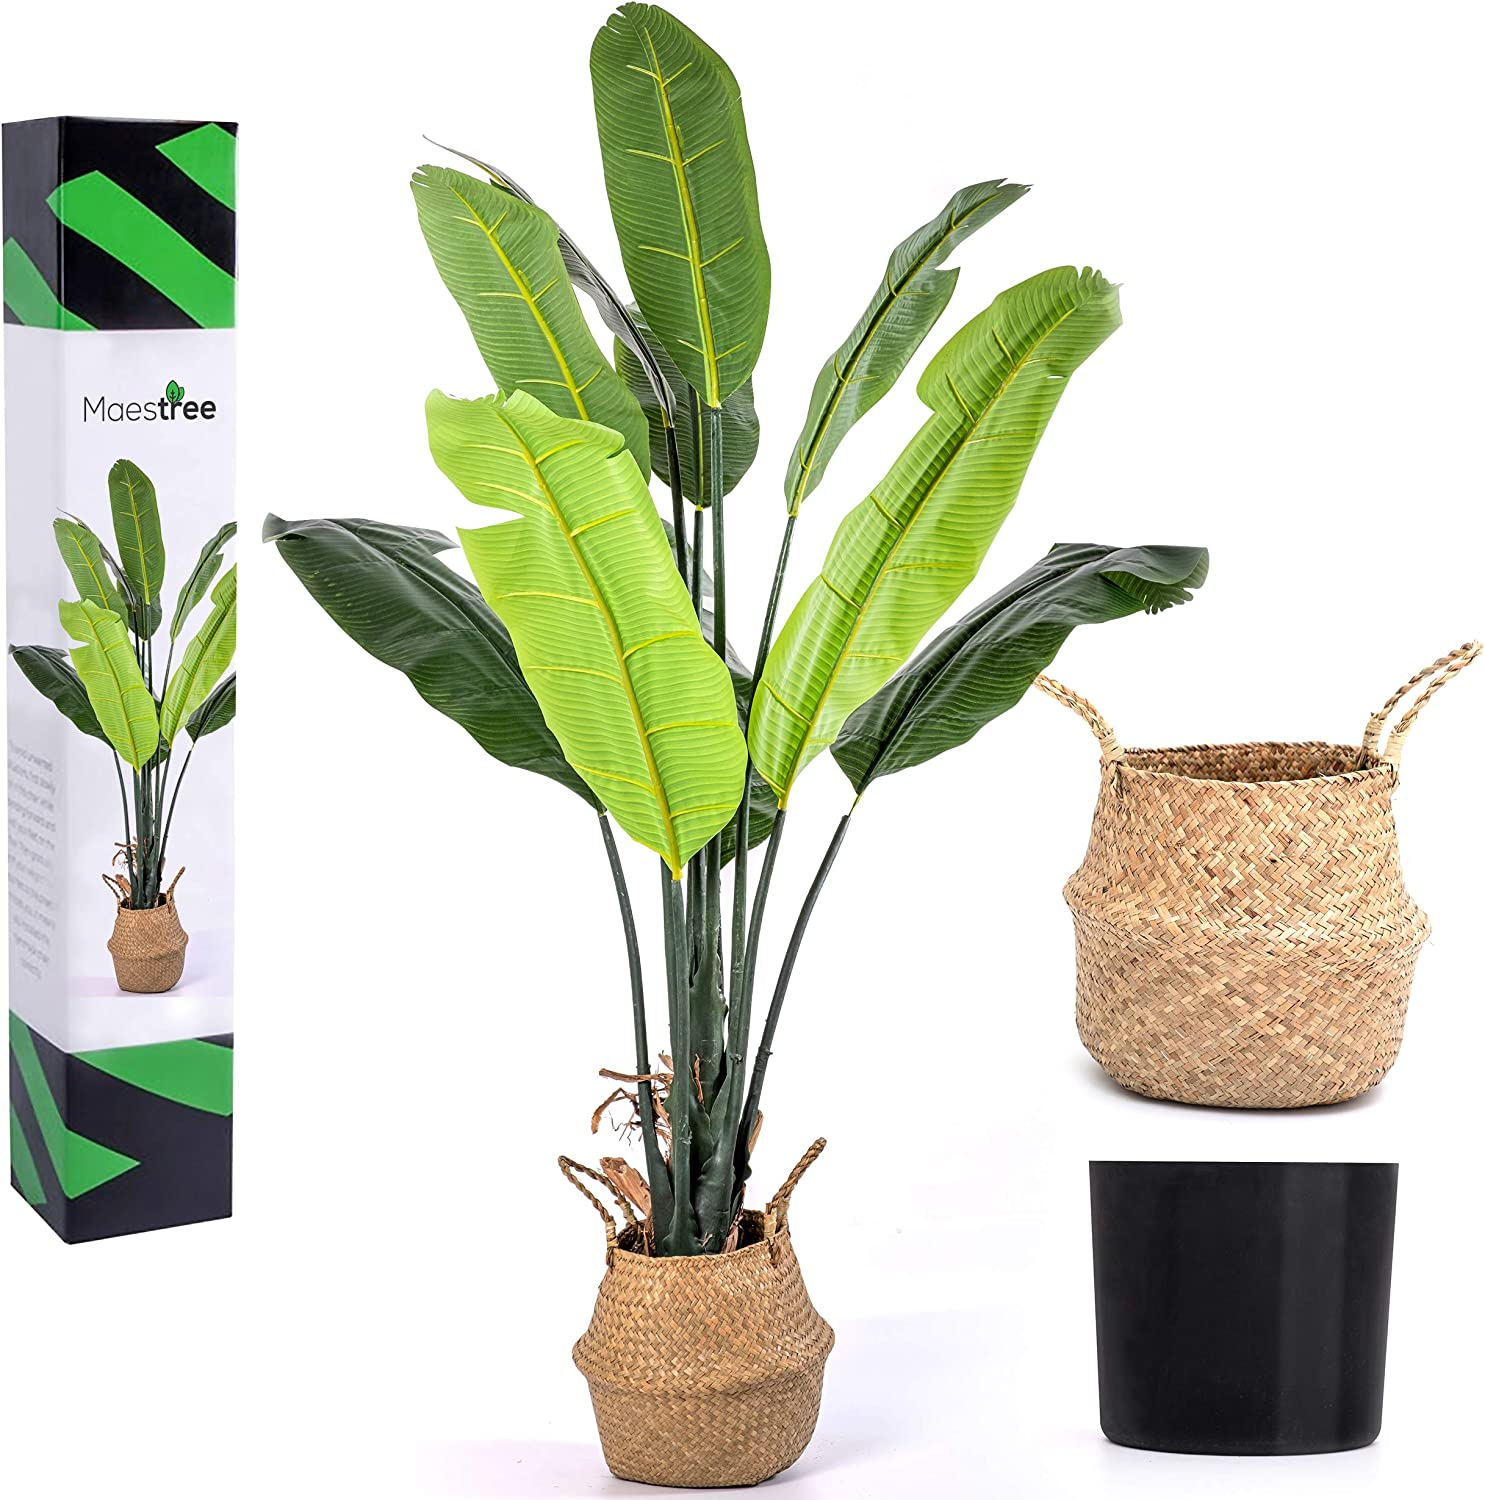 Maestree Faux Bird of Paradise Tree Artificial Plant – 6 Feet Tall Fake Plant with Adjustable Foliage – Fake Tree for Outdoor and Indoor Plants Decor at Home or Office - Seagrass Basket Included